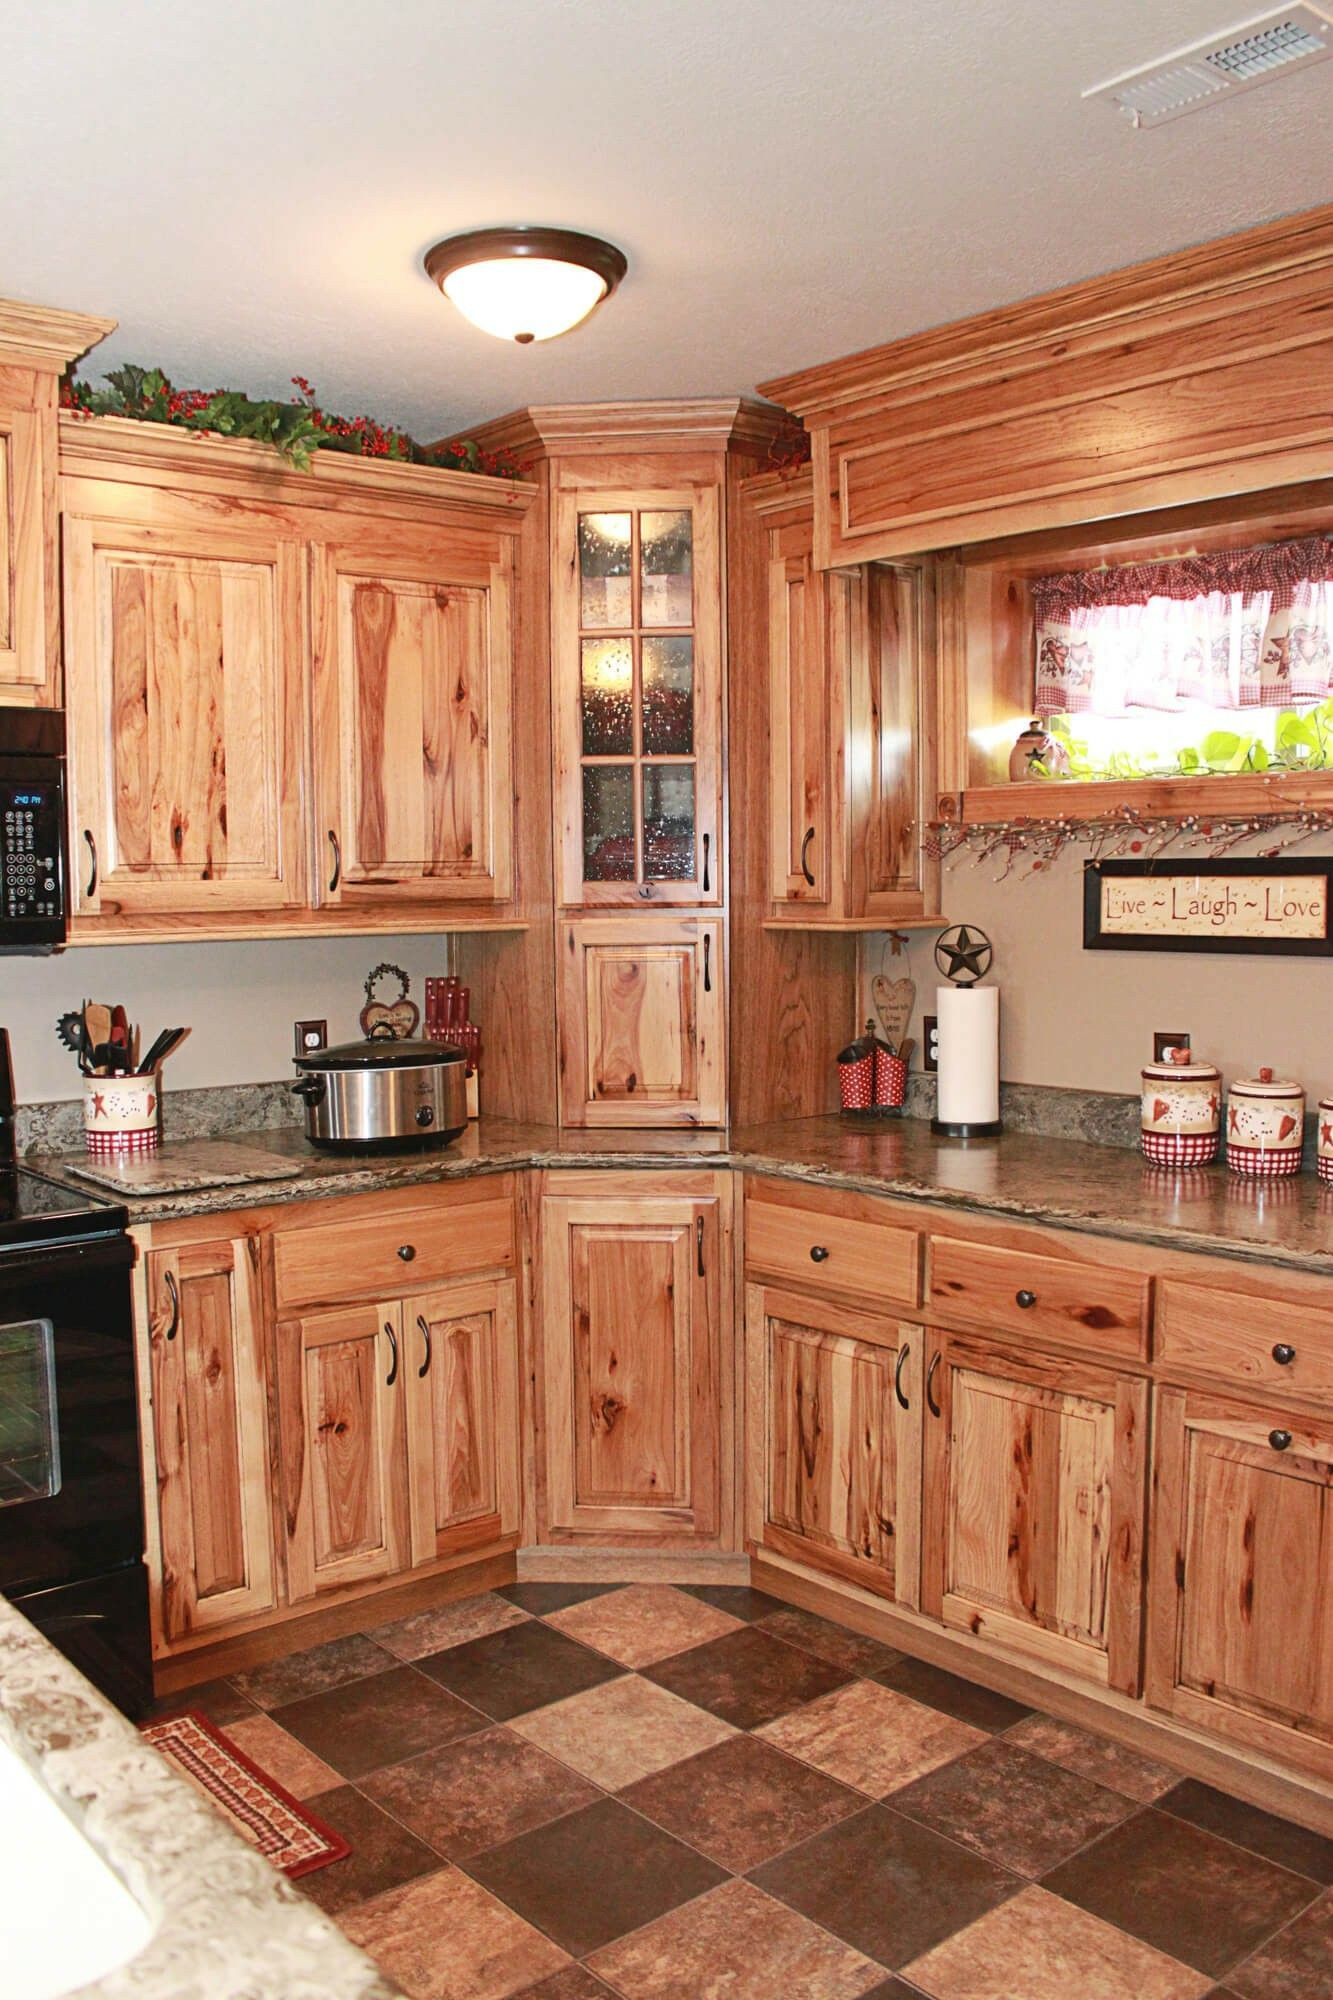 Hickory kitchen cabinets kitchen pinterest hickory for Hickory kitchen cabinets